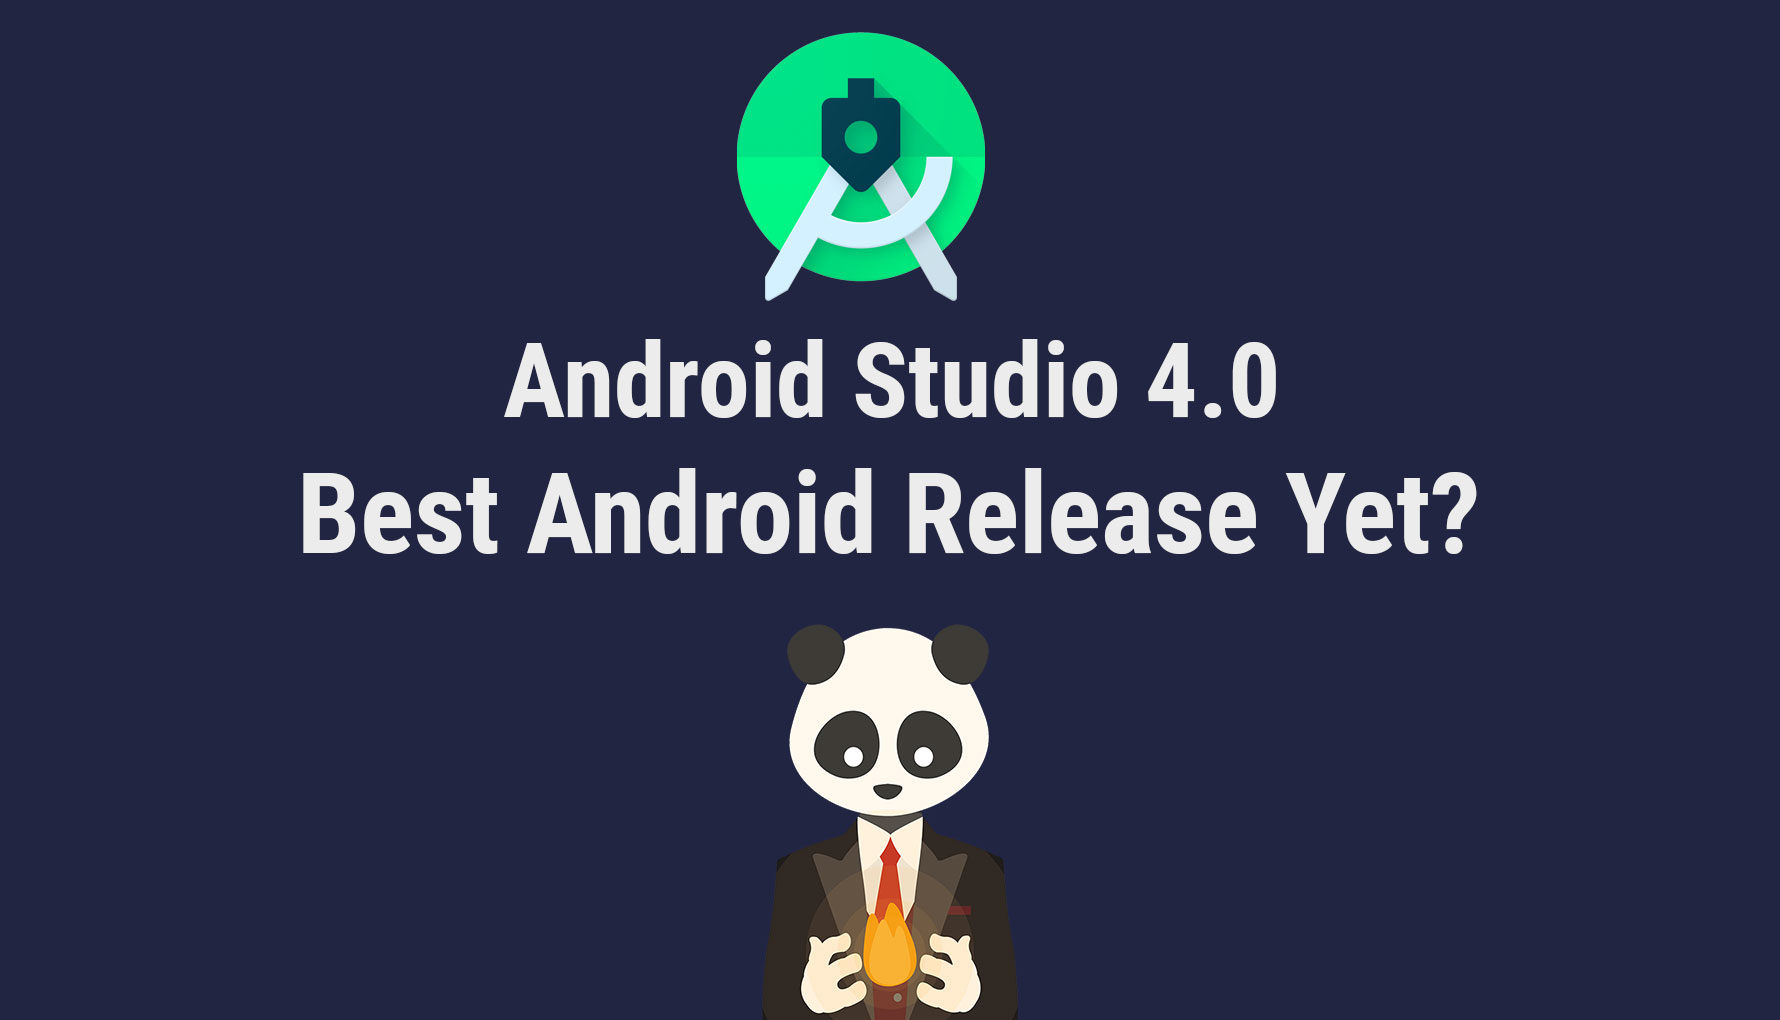 Android Studio 4.0: The best Android Studio release yet?